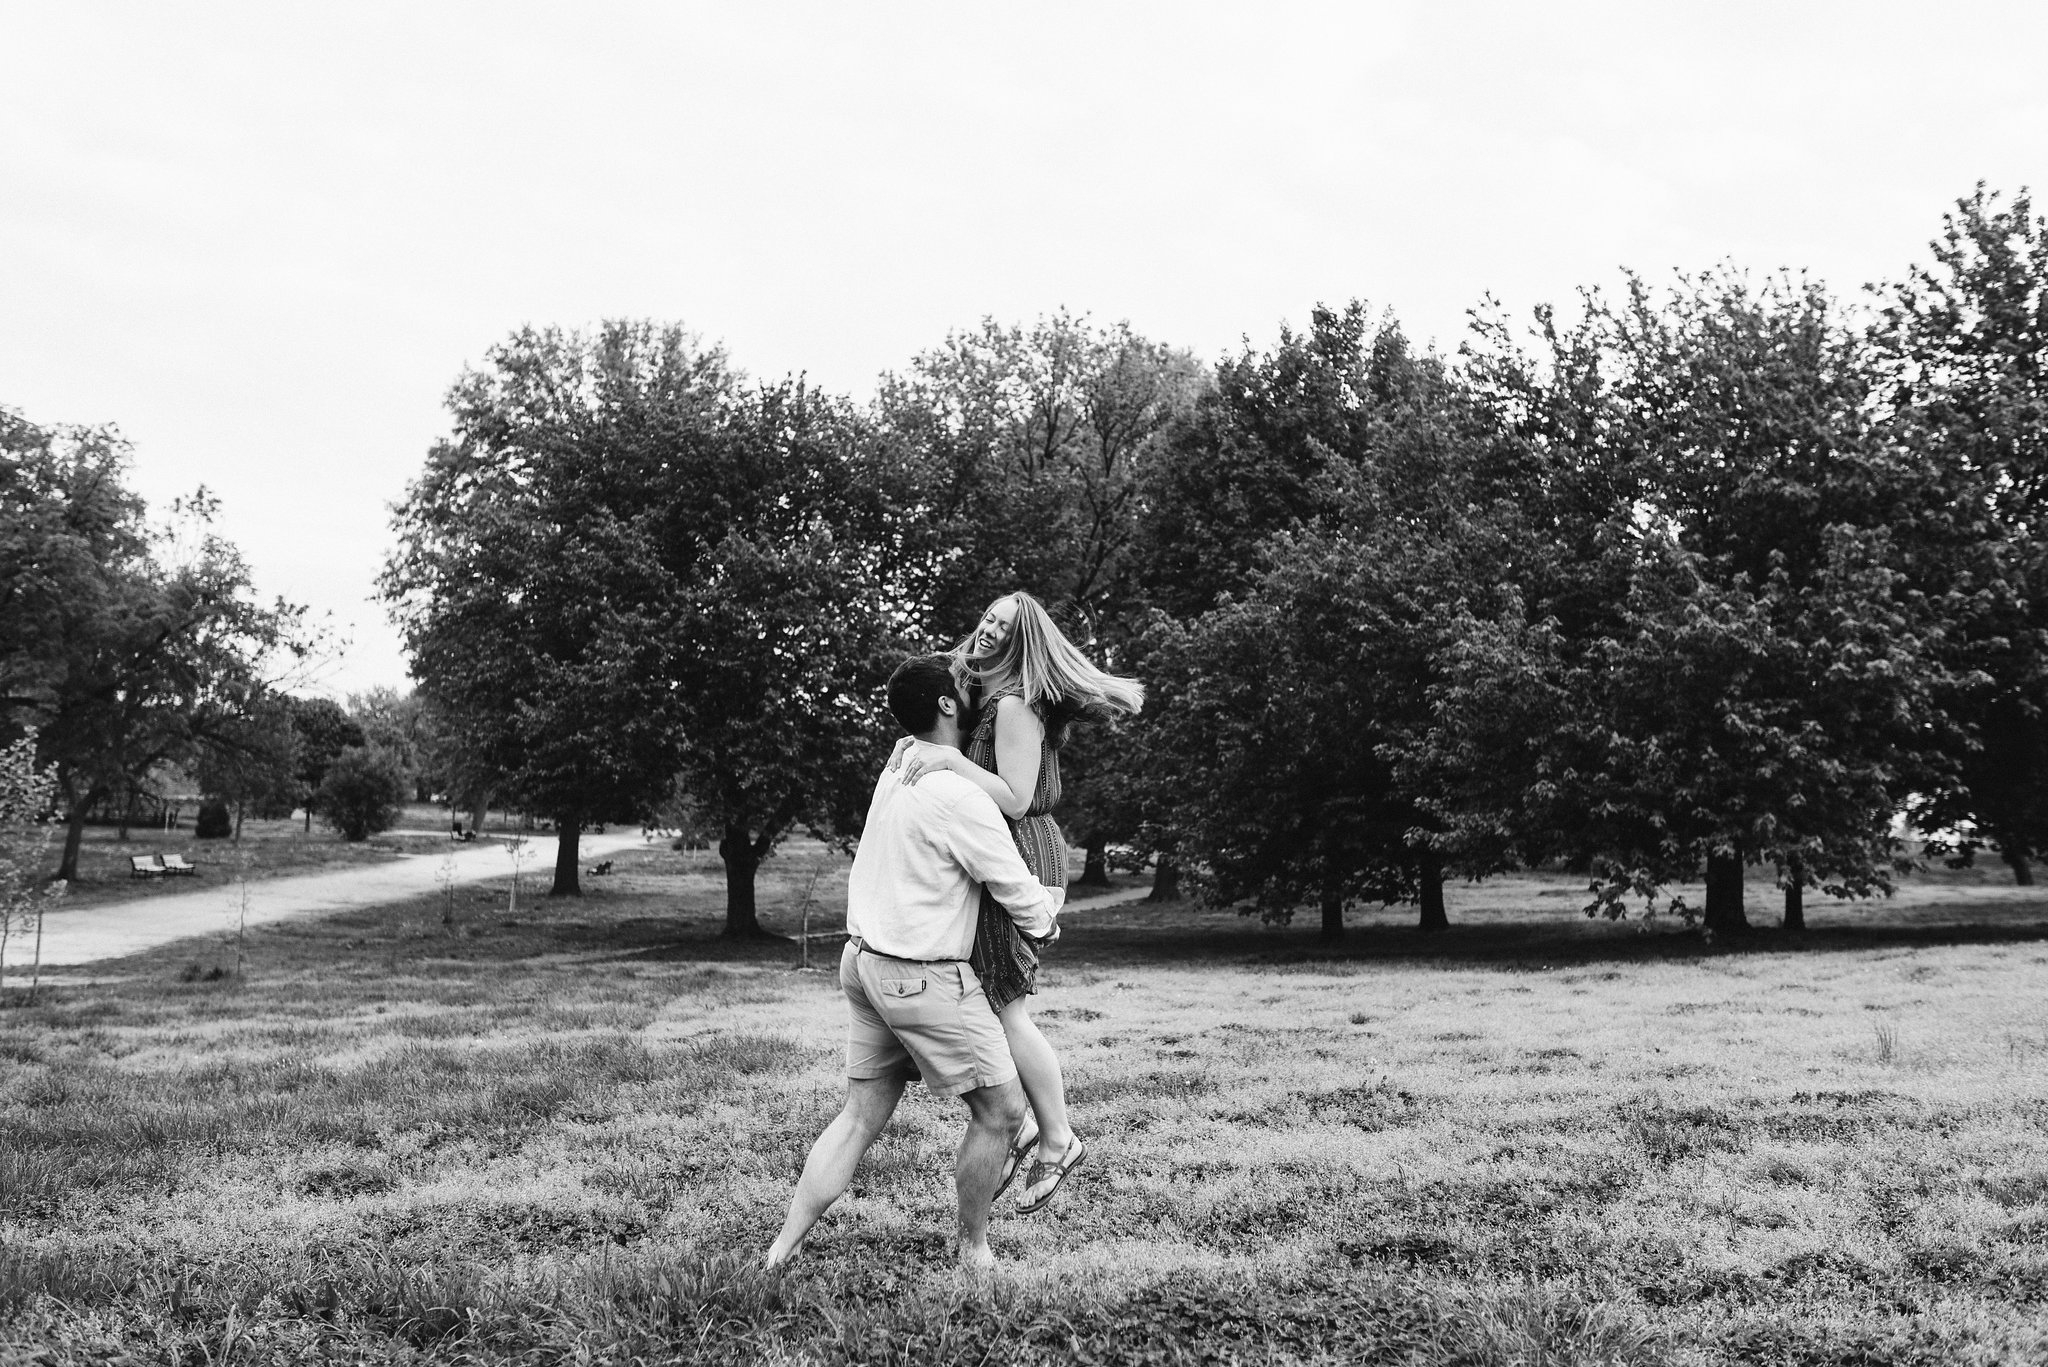 Engagement Photos, Patterson Park, Baltimore, Maryland Wedding Photographer, Casual, Fun, Nature, Groom Picking Up Bride and Spinning, Black and White Photo